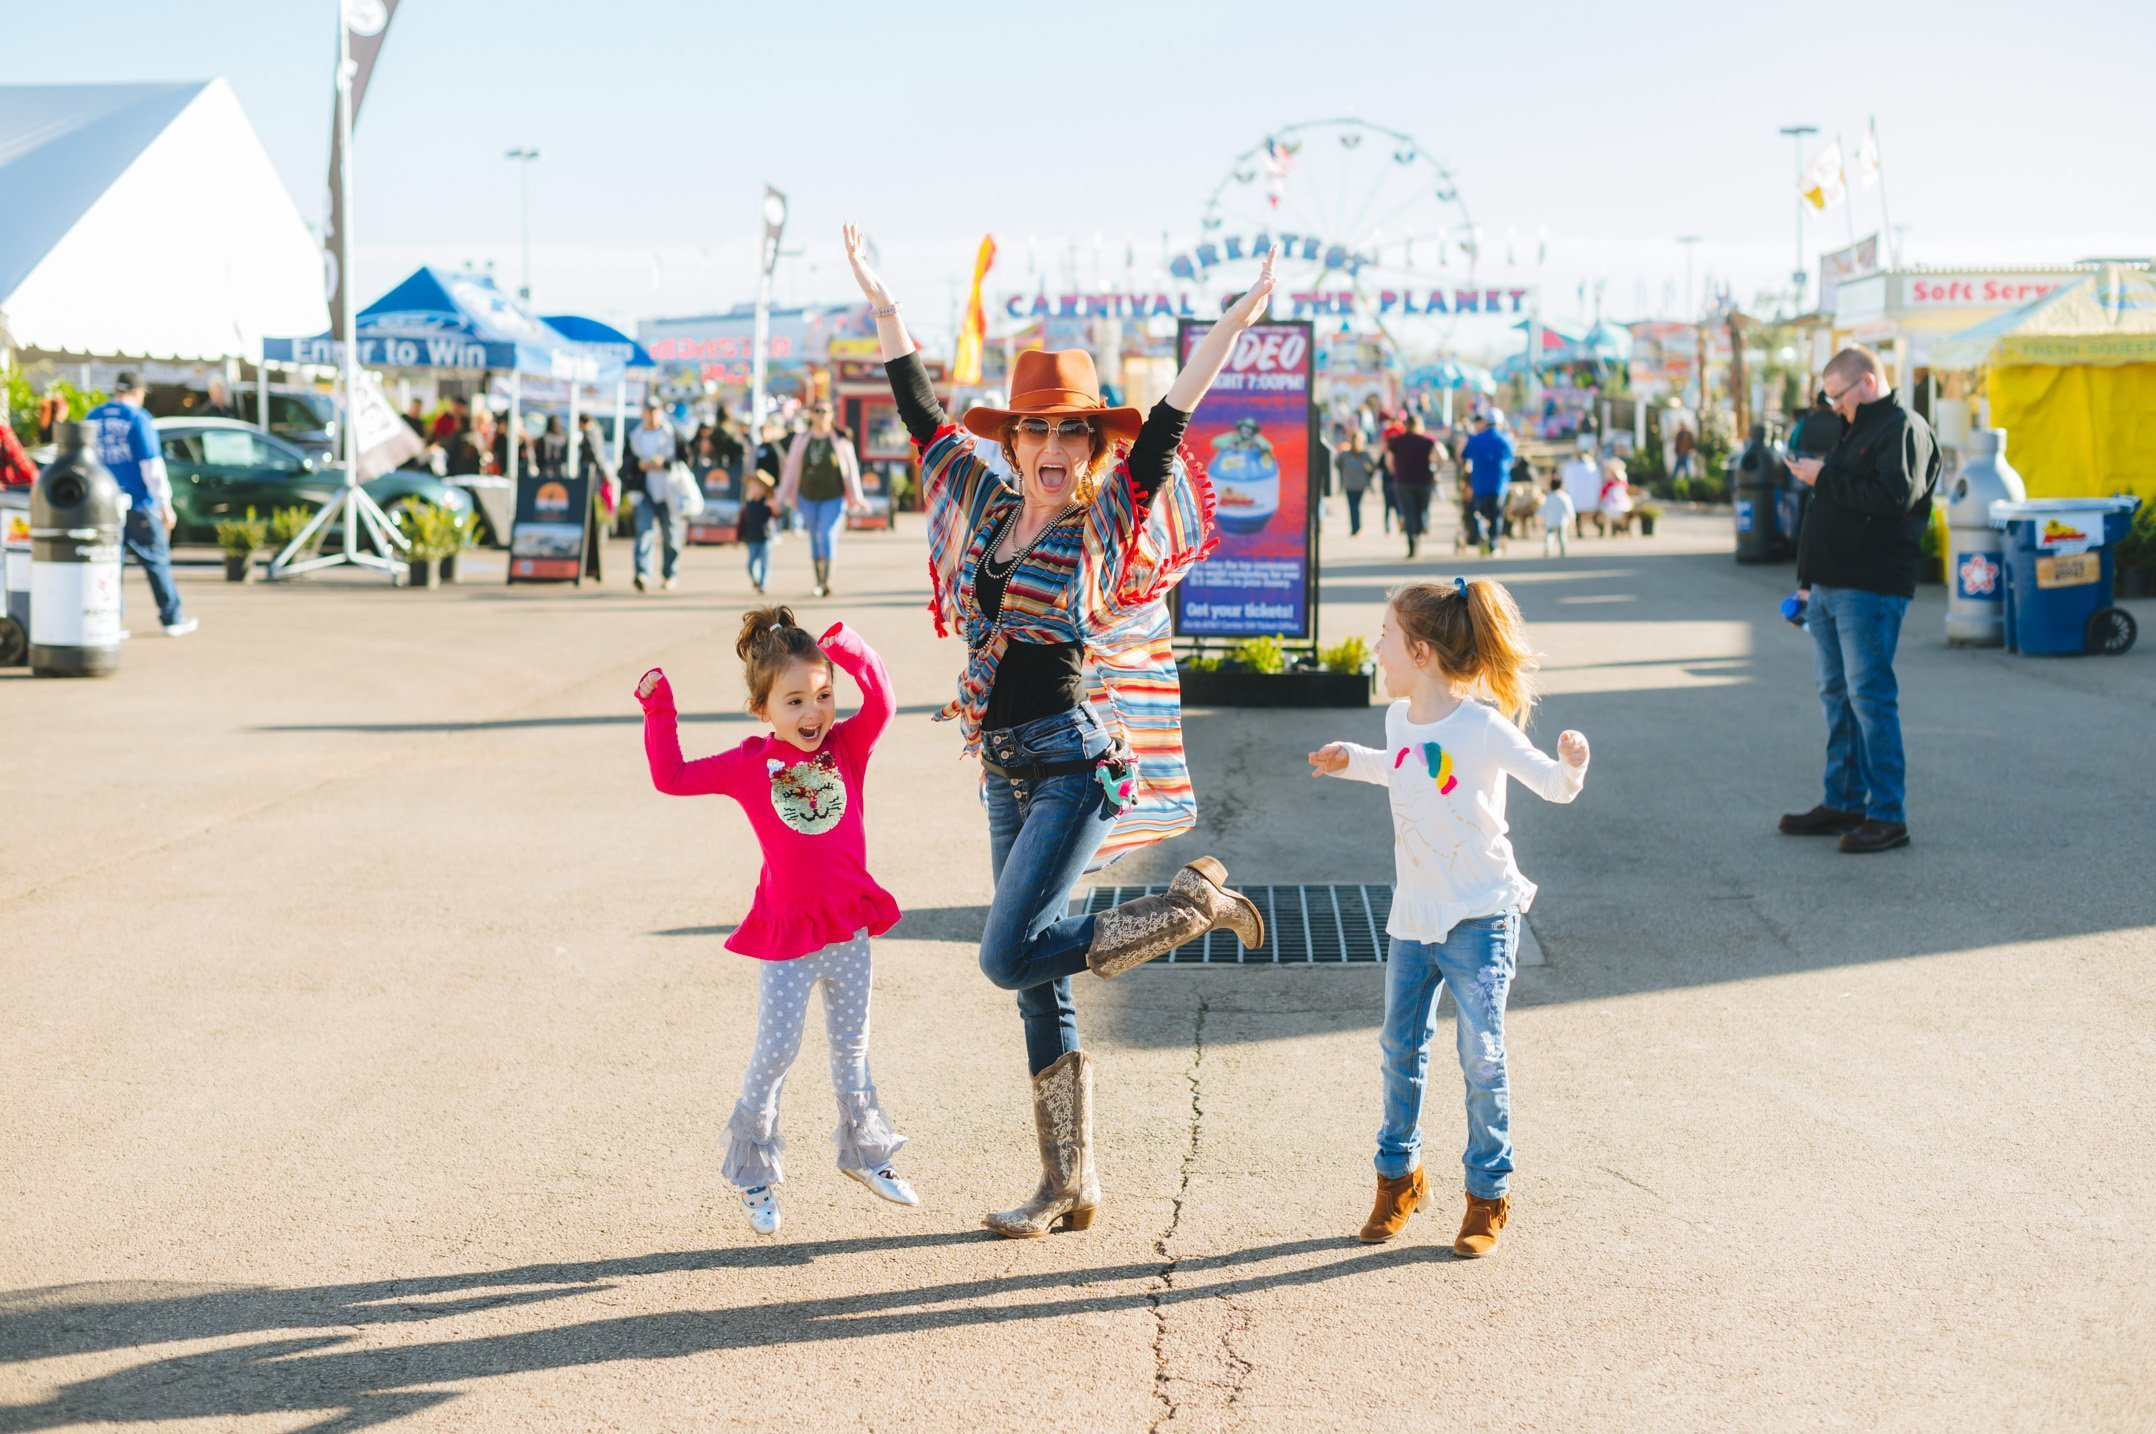 San Antonio Rodeo – Mom Tips for the Rodeo